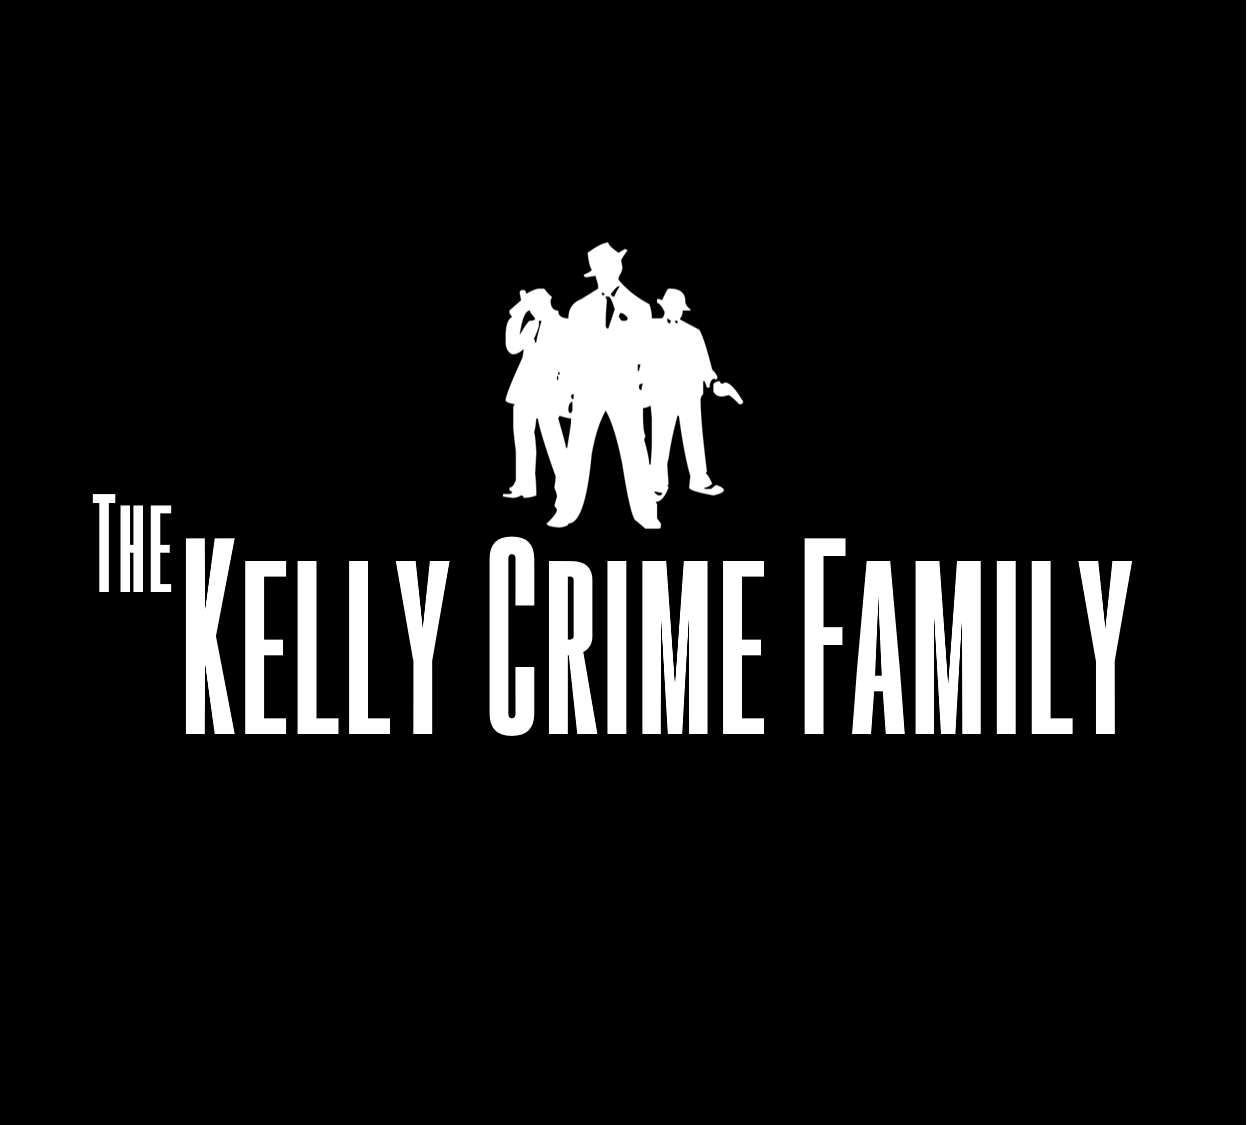 The Kelly Crime Family